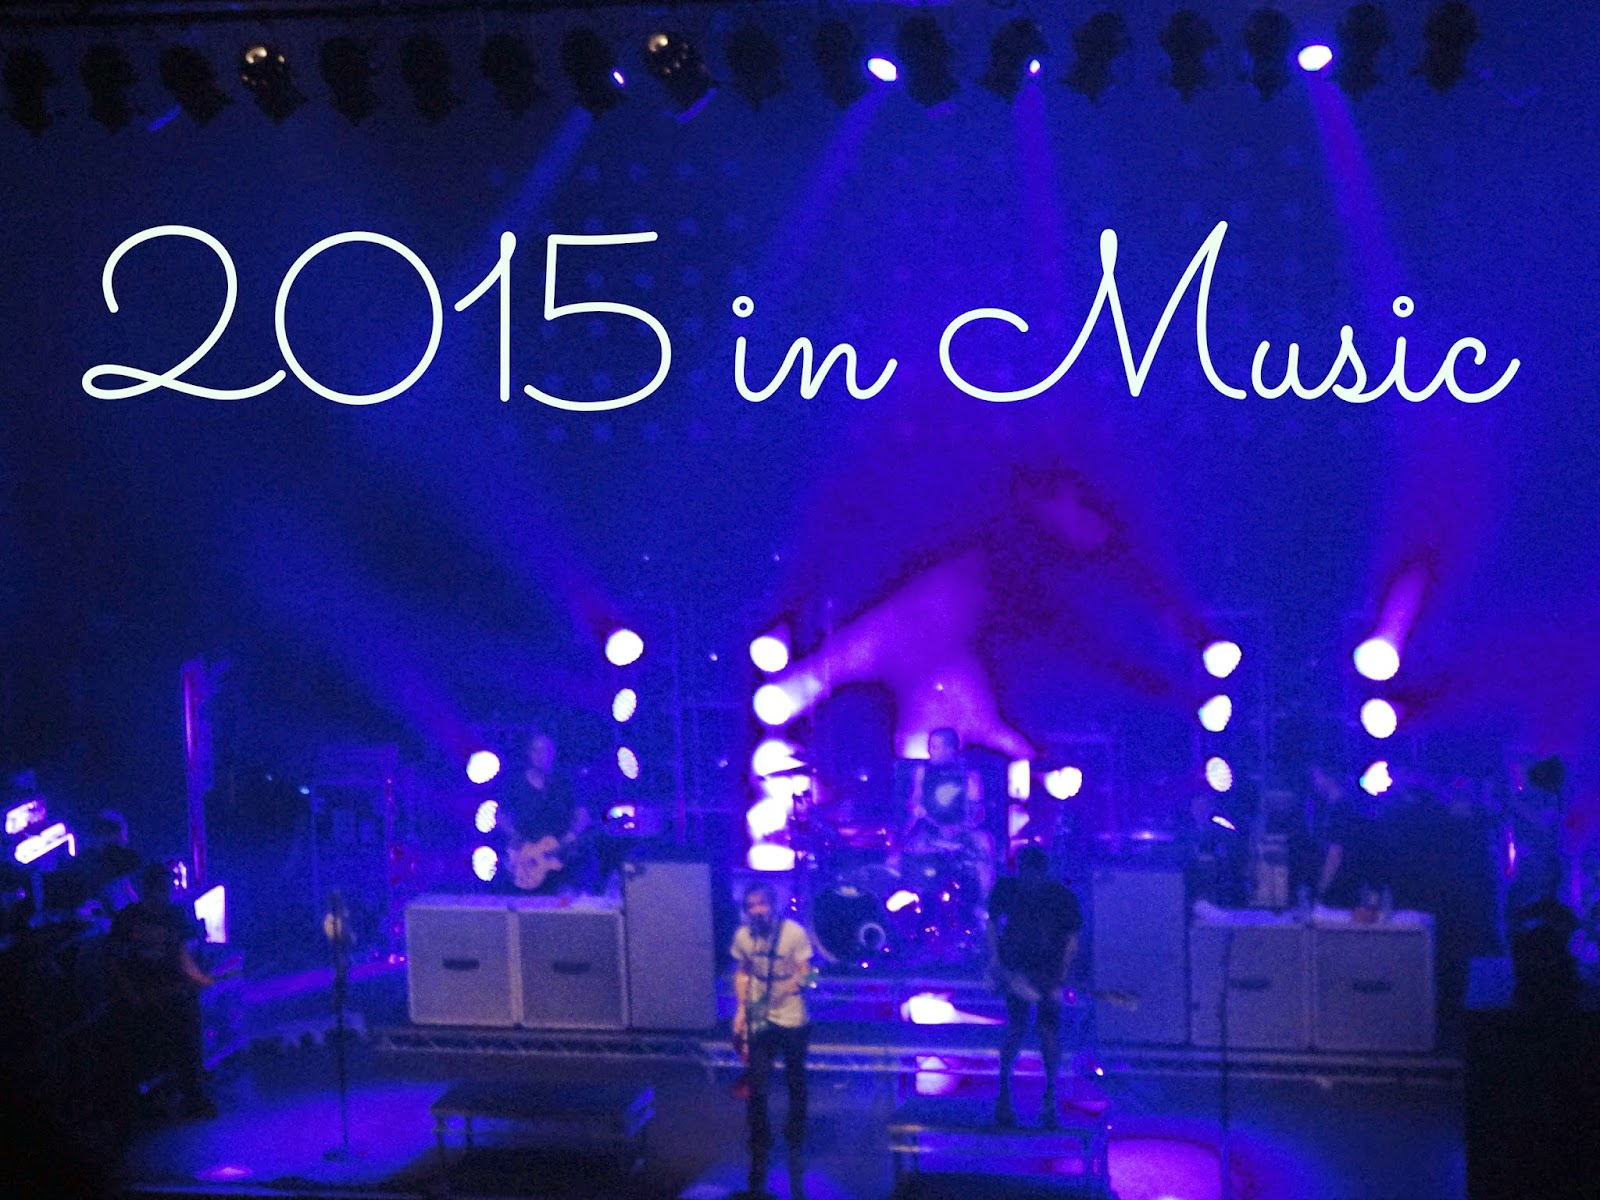 2015 in Music | All Time Low on stage at Glasgow O2 Academy concert